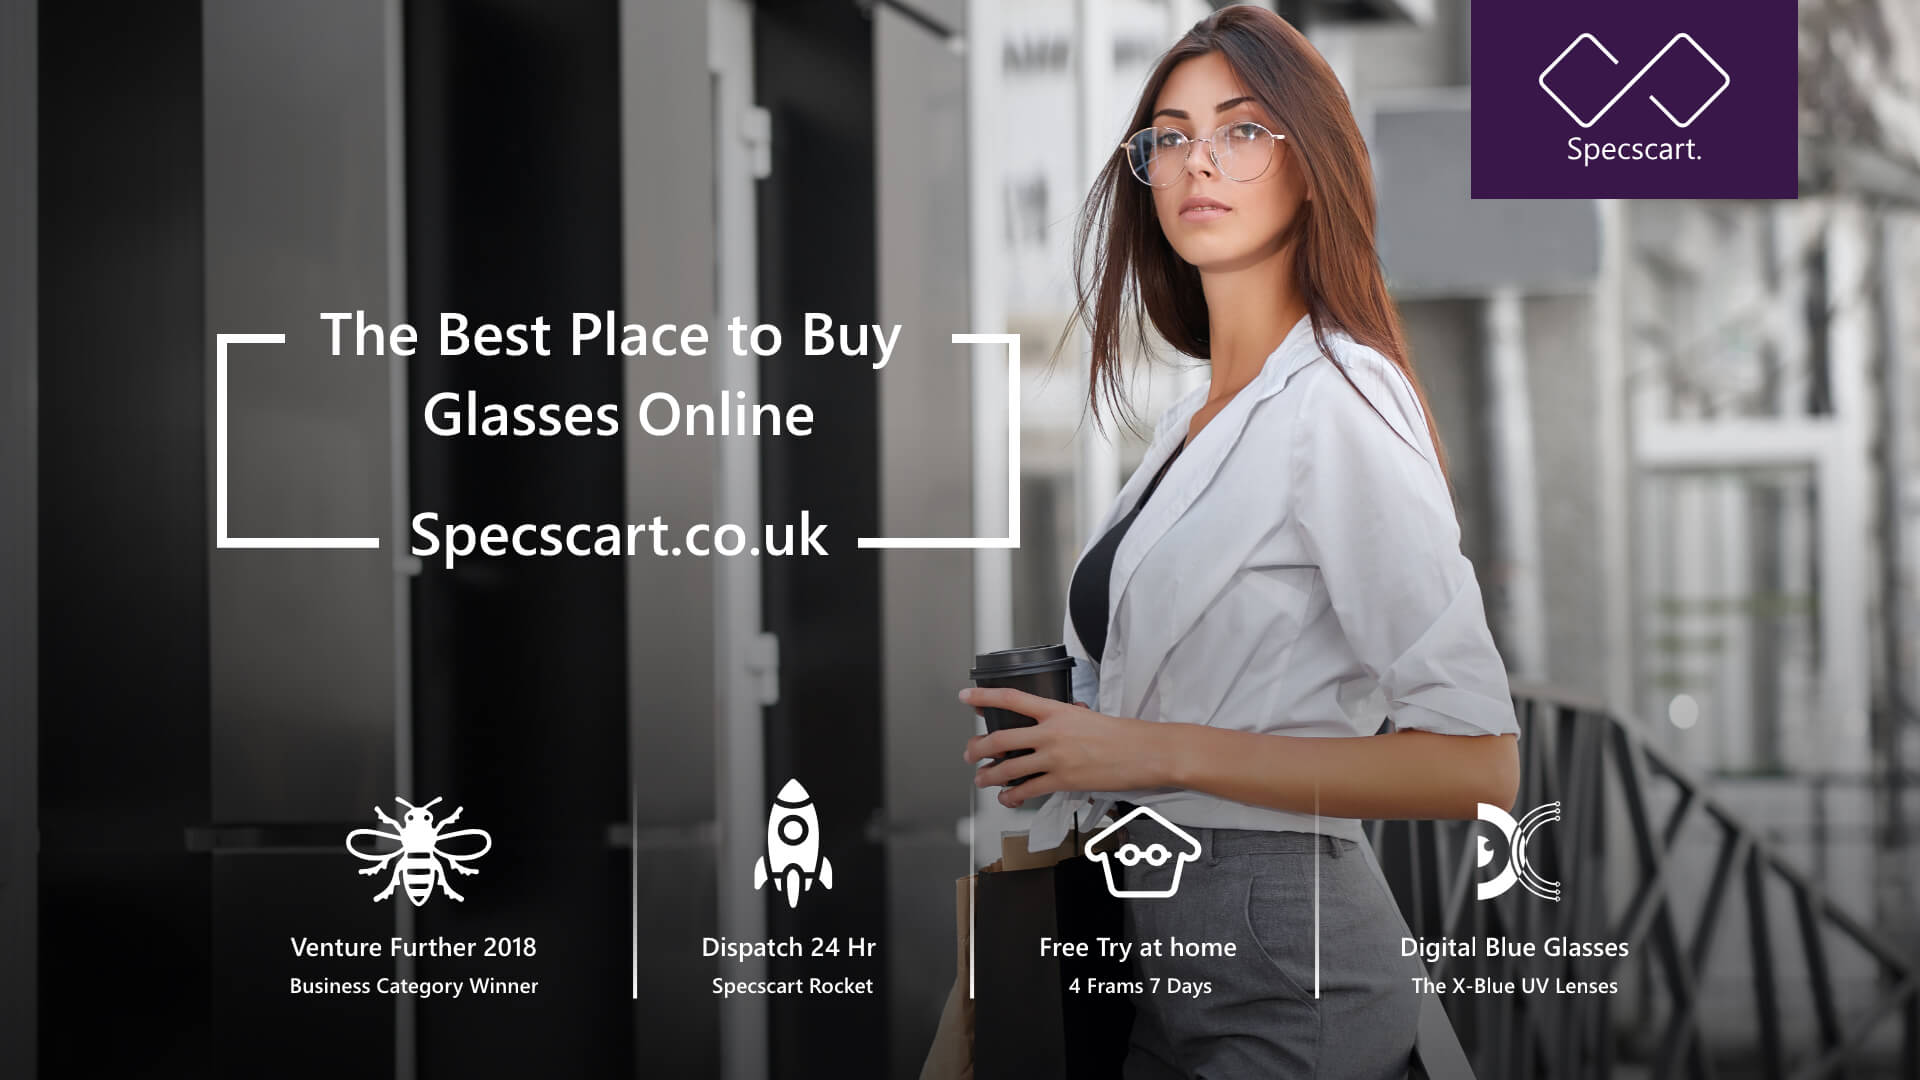 The Best Place to Buy Glasses Online